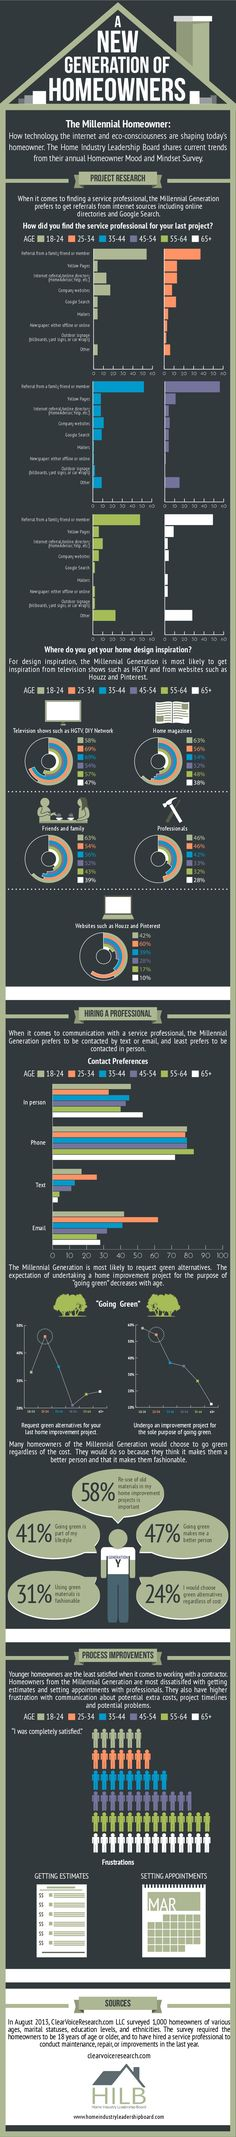 The Millennial Homeowner: How technology, the internet and eco-consciousness are shaping today's homeowner. #infografía